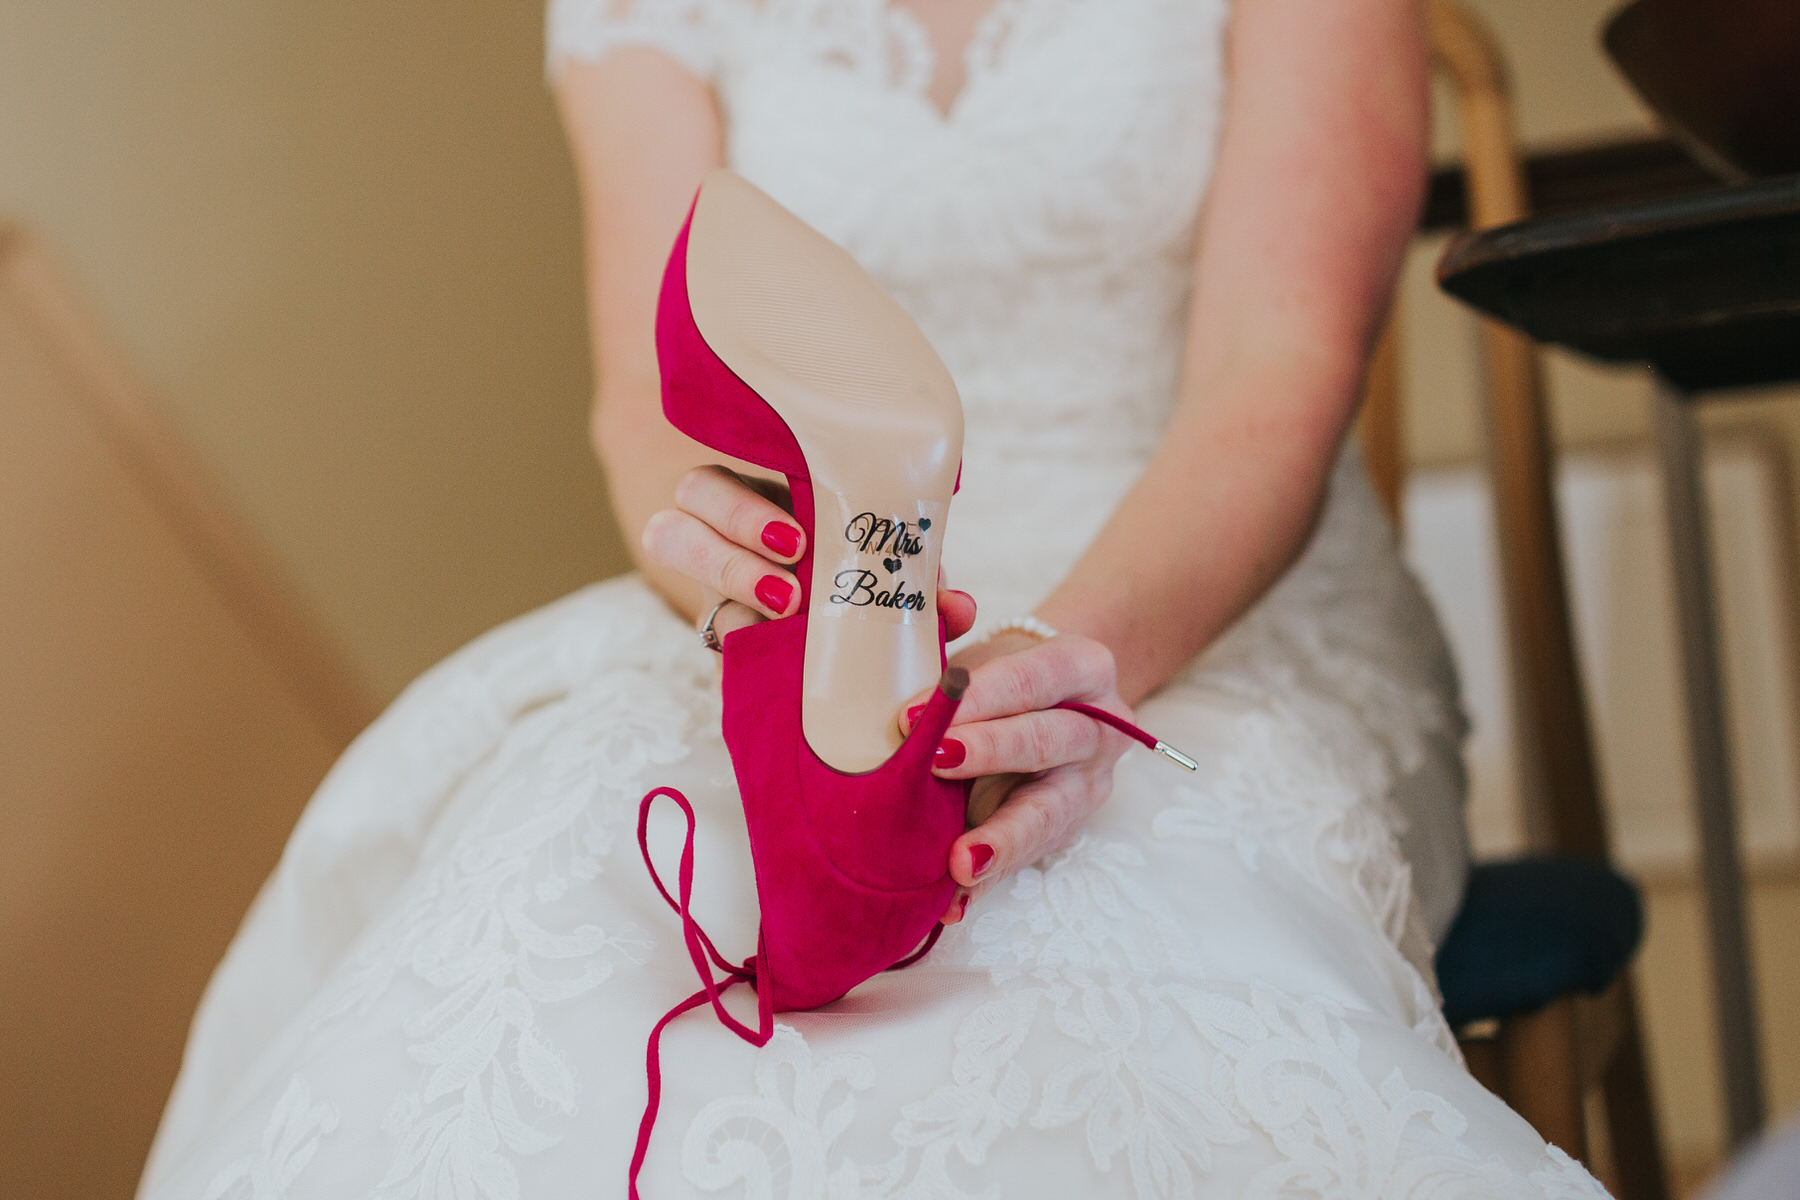 Mrs Baker sticker hotpink wedding shoe sole.jpg